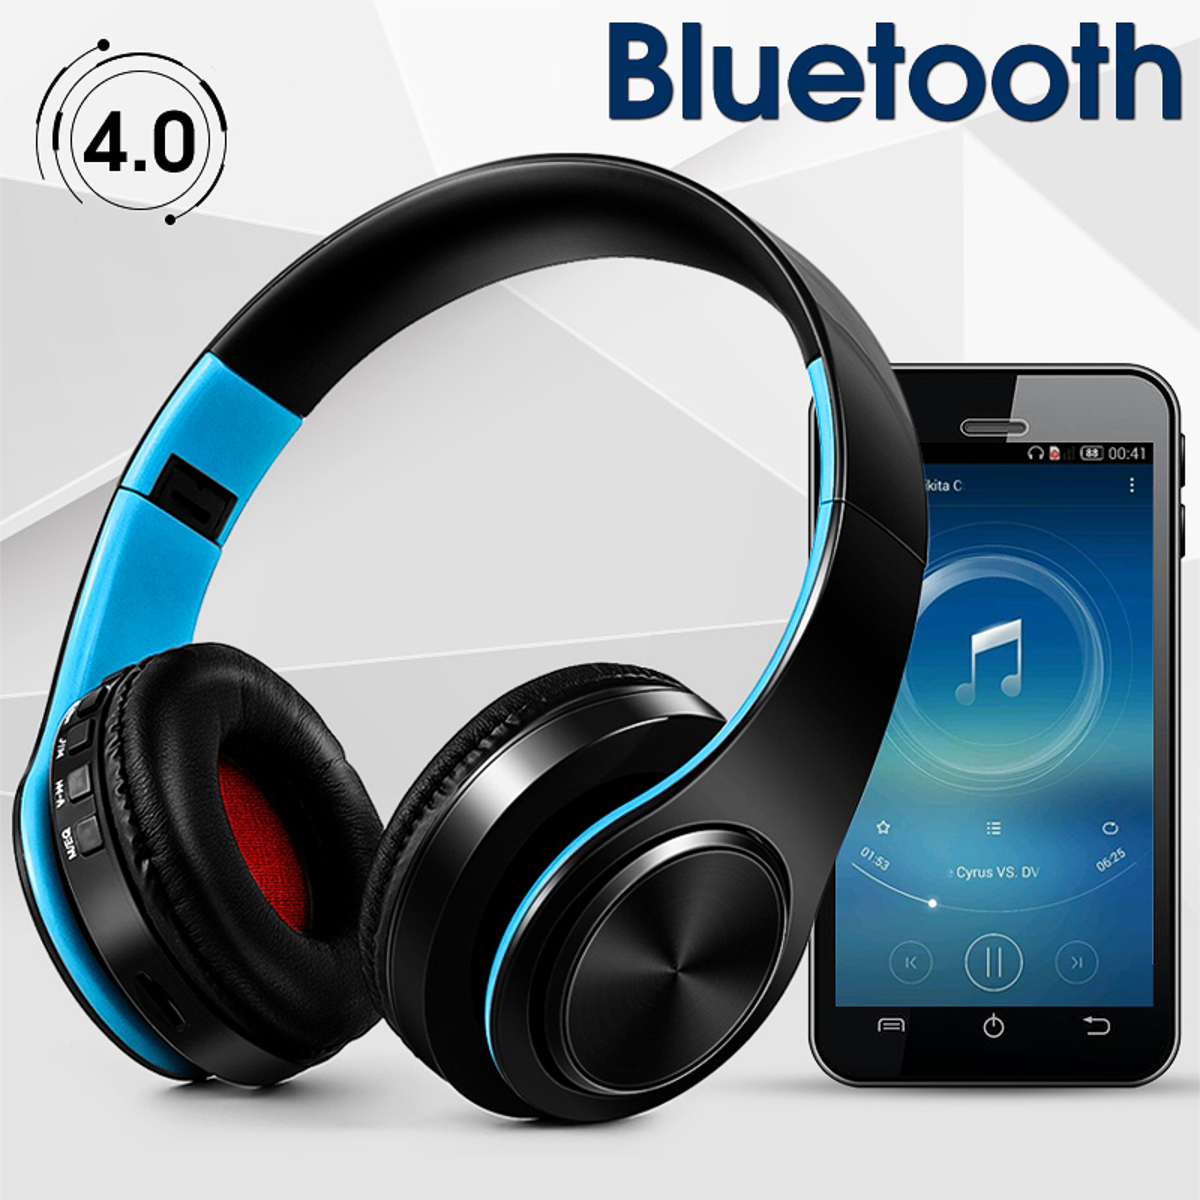 Rechargeable On Ear Noise Cancelling Bluetooth Headphones HI-FI Stereo Surround Foldable Wireless Headsets for Cell Phone, Tablet PC Laptop, MP3/4, Video Game